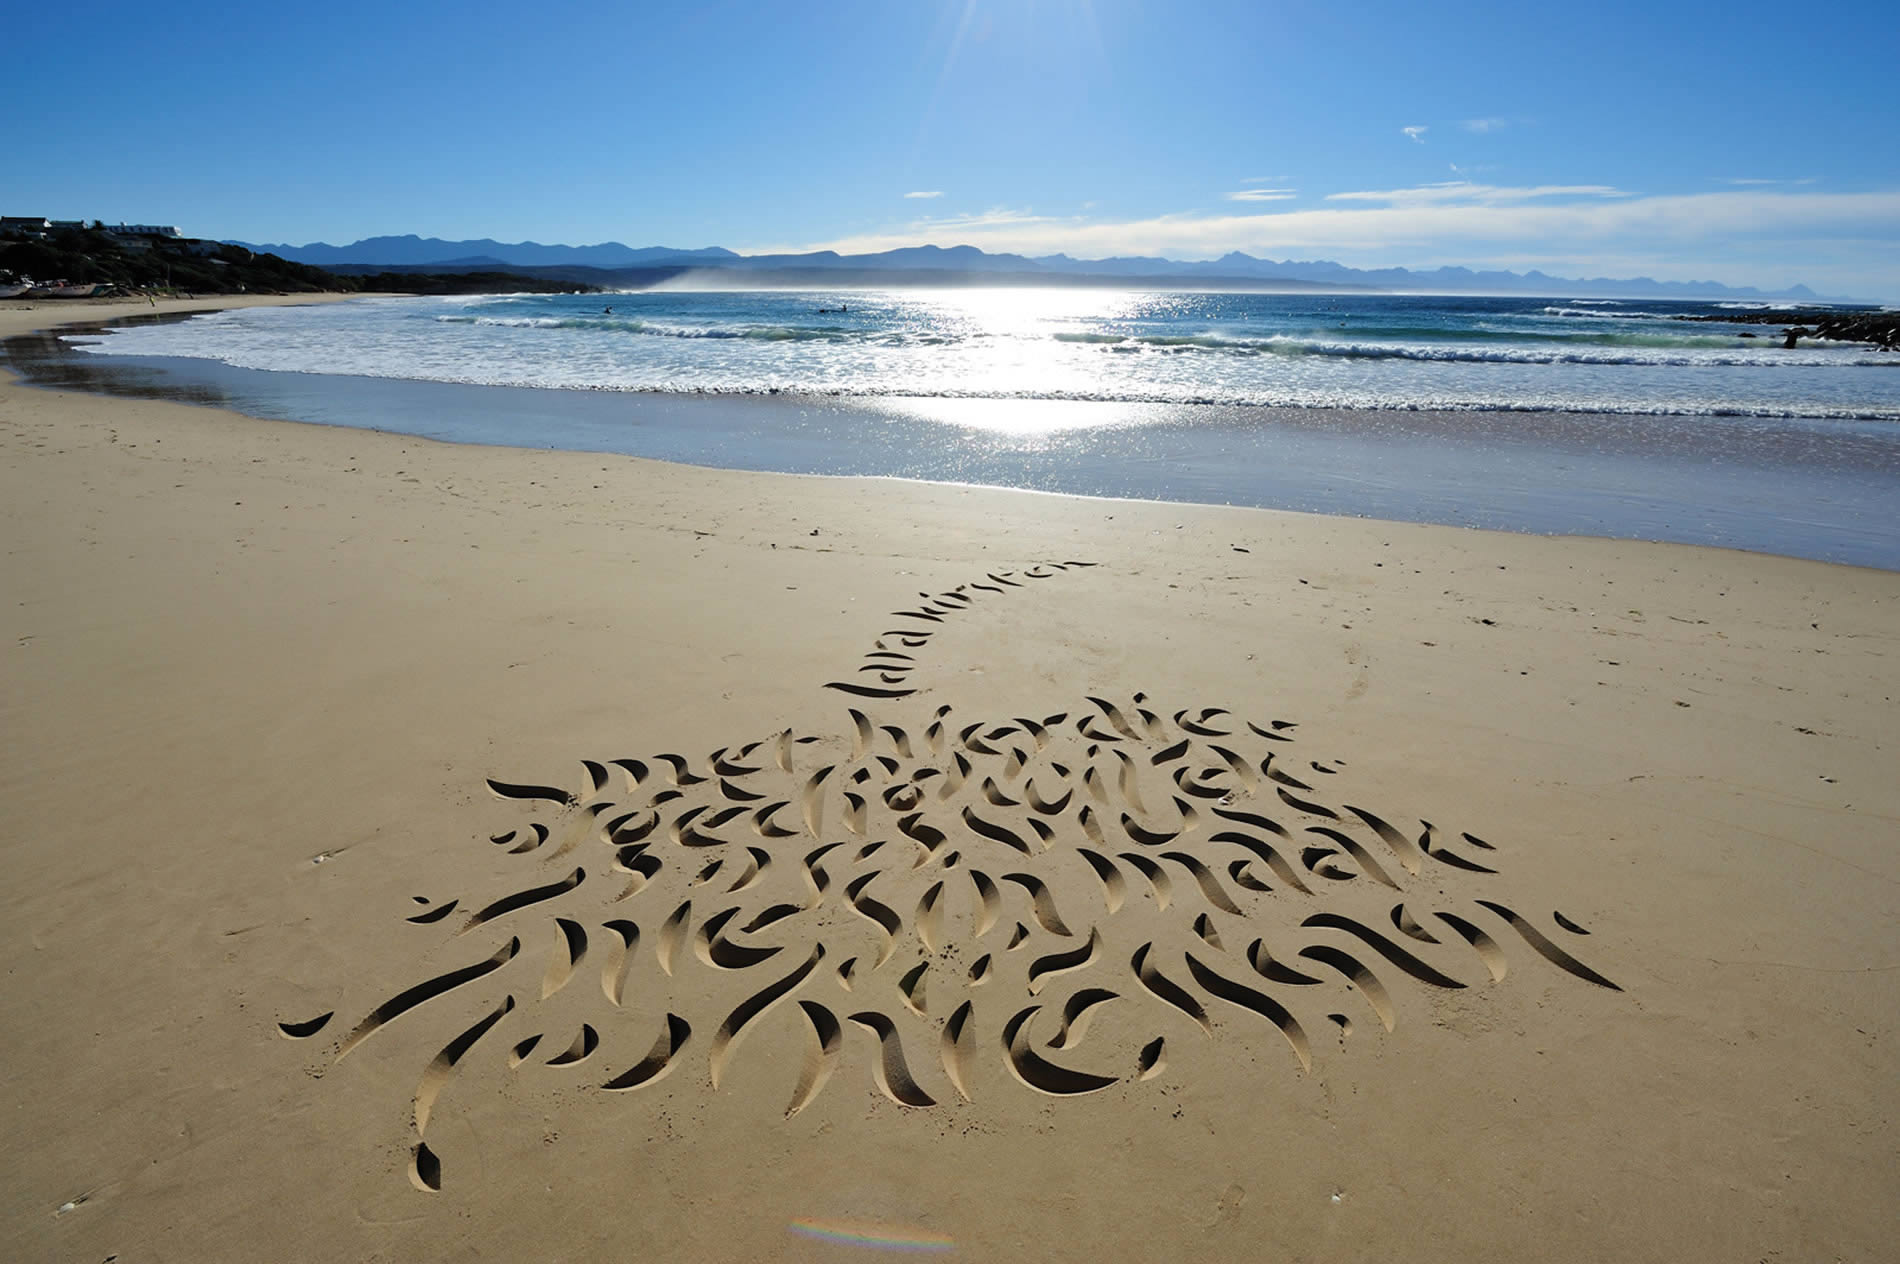 beautiful calligraphy on the beach, sunny day